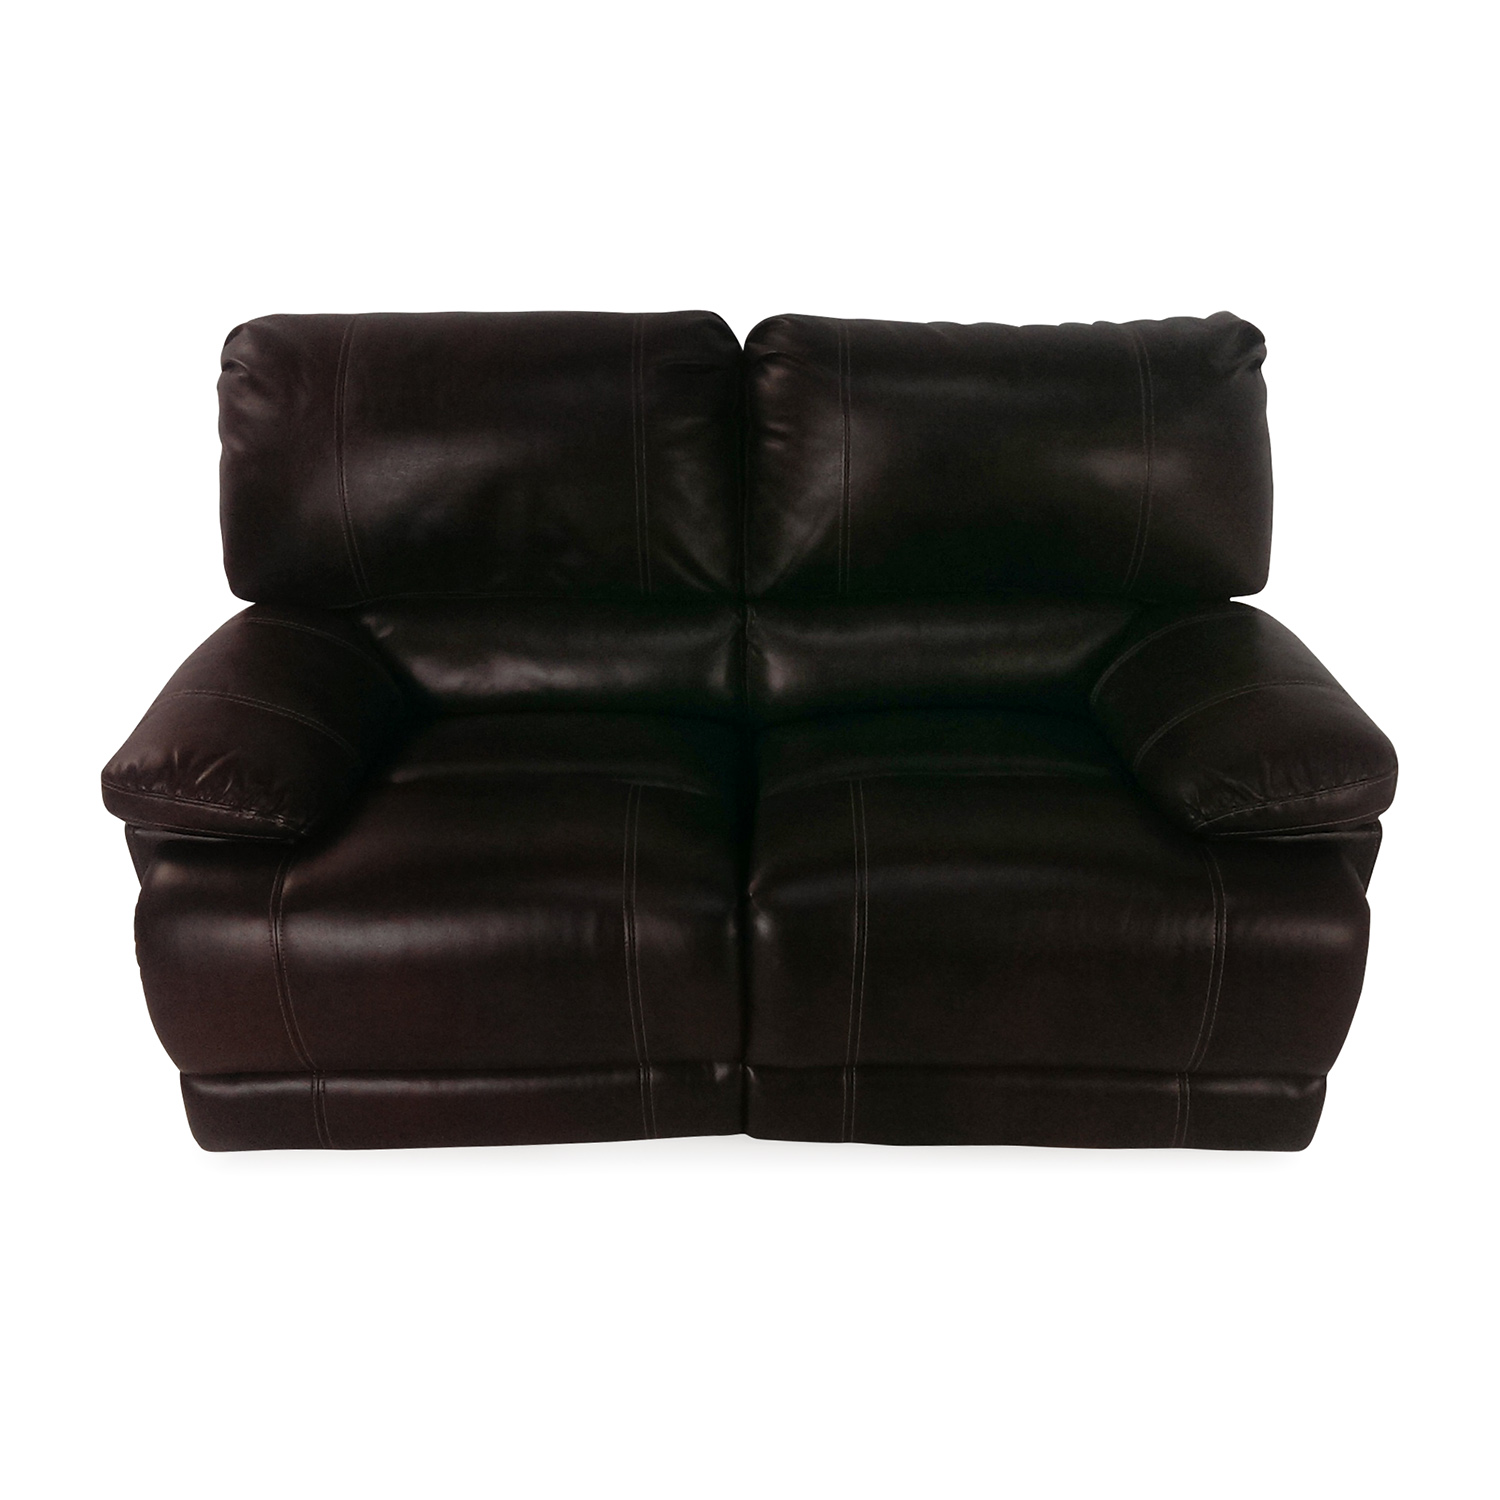 Bobs Furniture Bobs Furniture Reclining Loveseat Brown